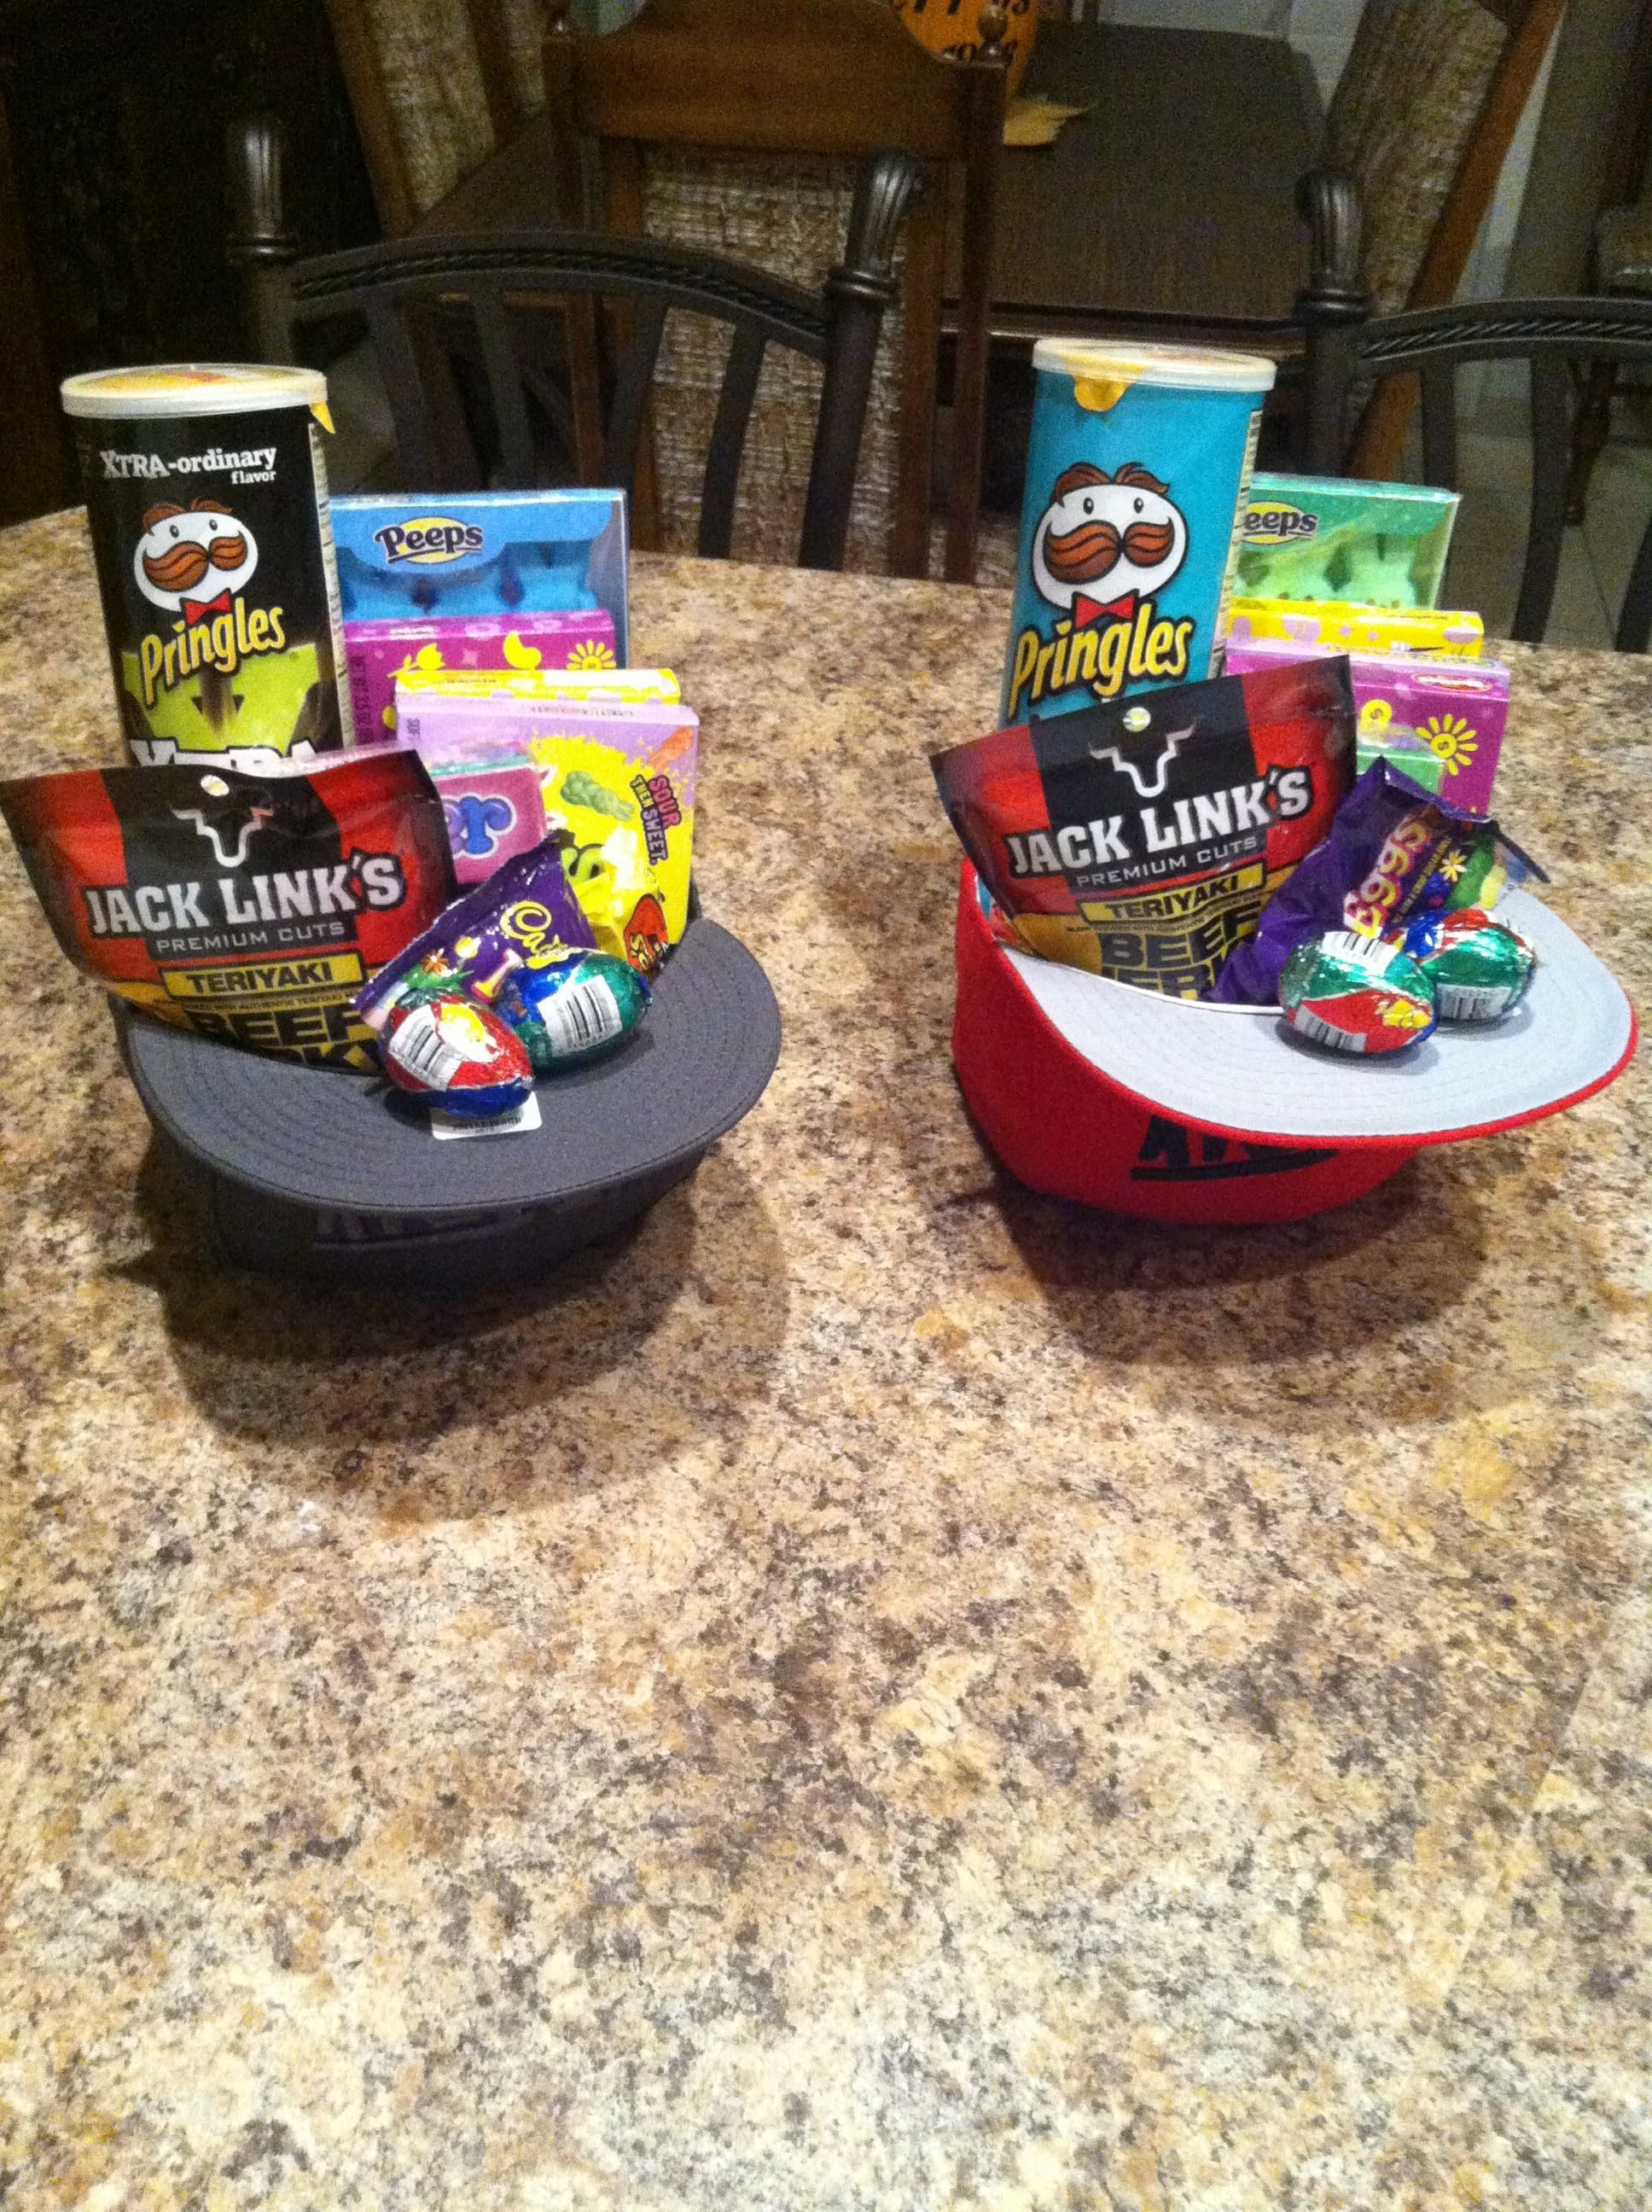 10 Most Popular Easter Basket Ideas For Teenagers give them something special with a personalized easter basket 2021